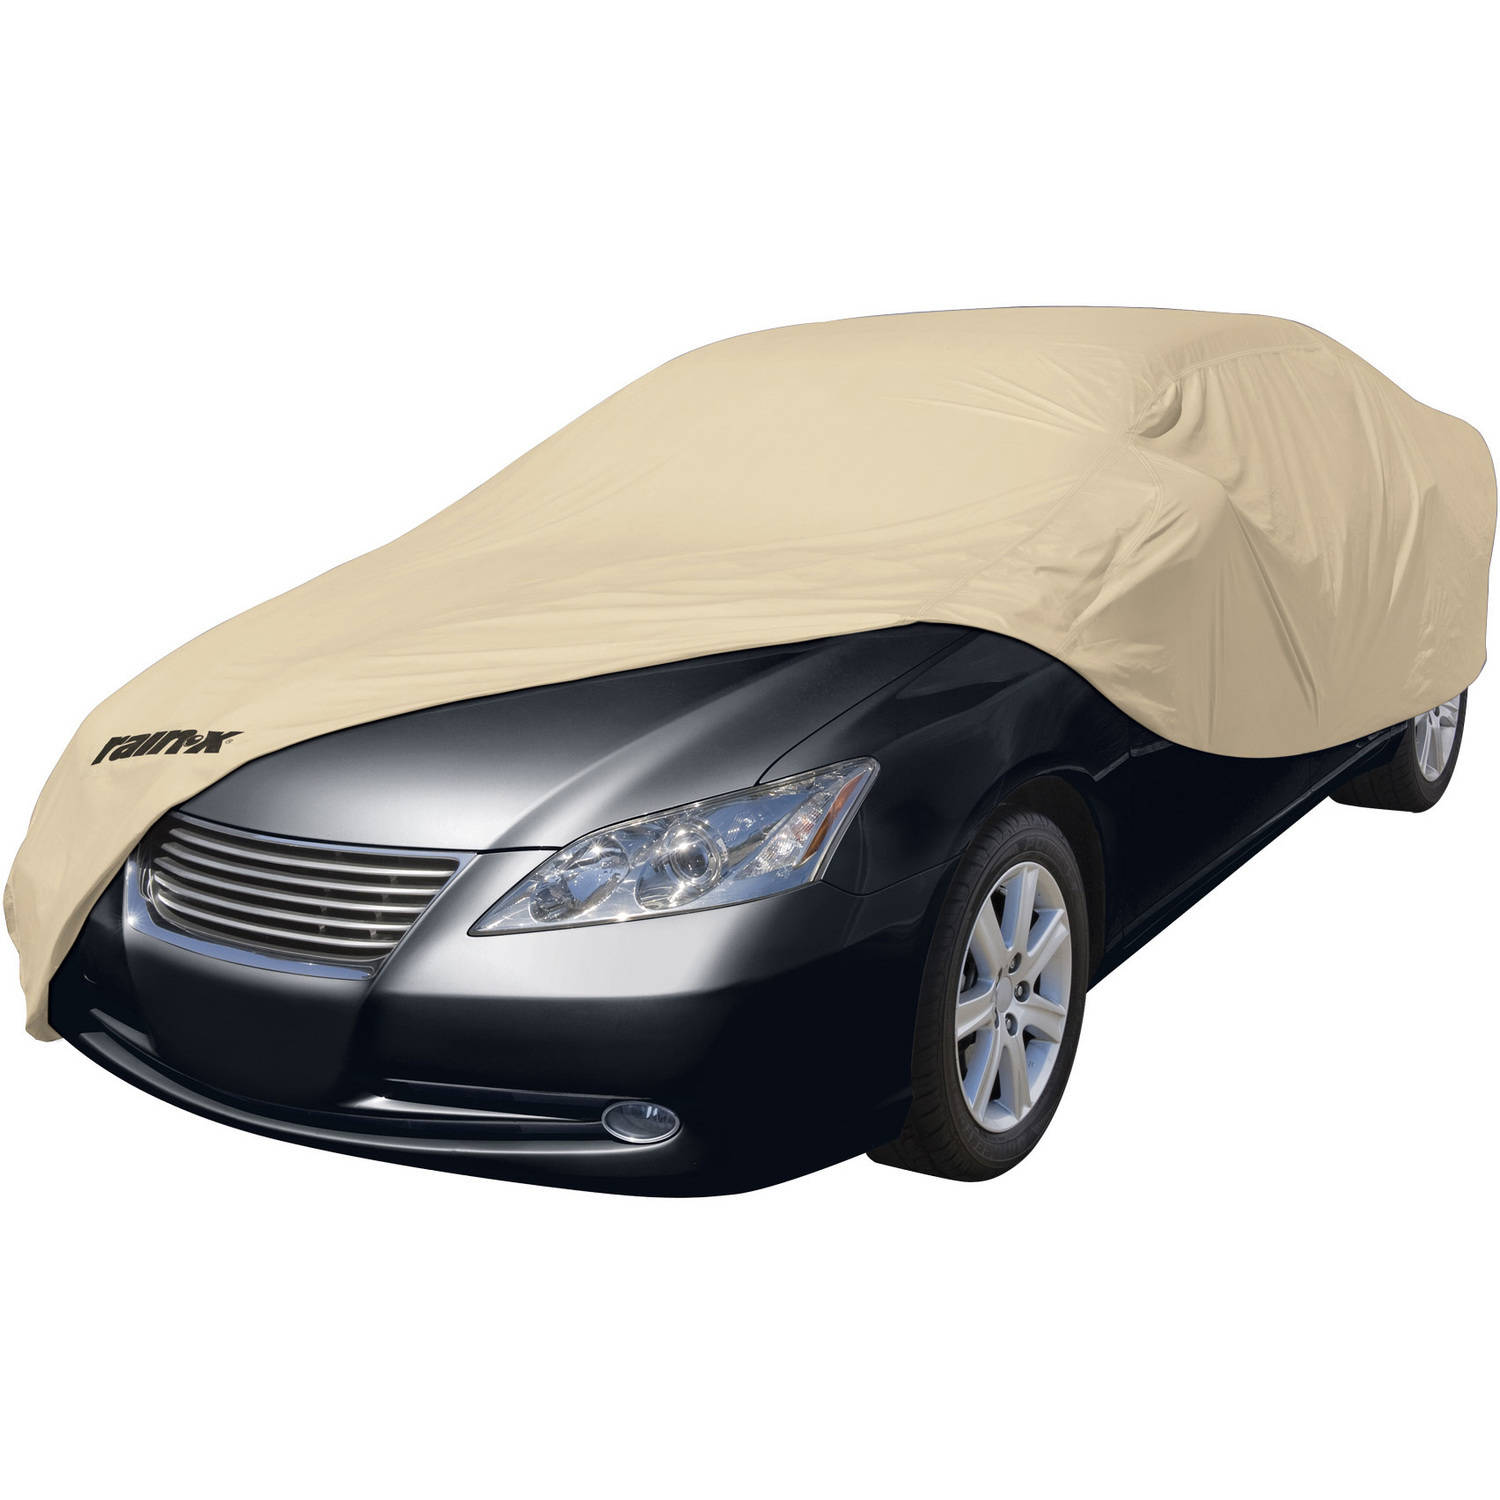 Universal Fit Car Cover, Large